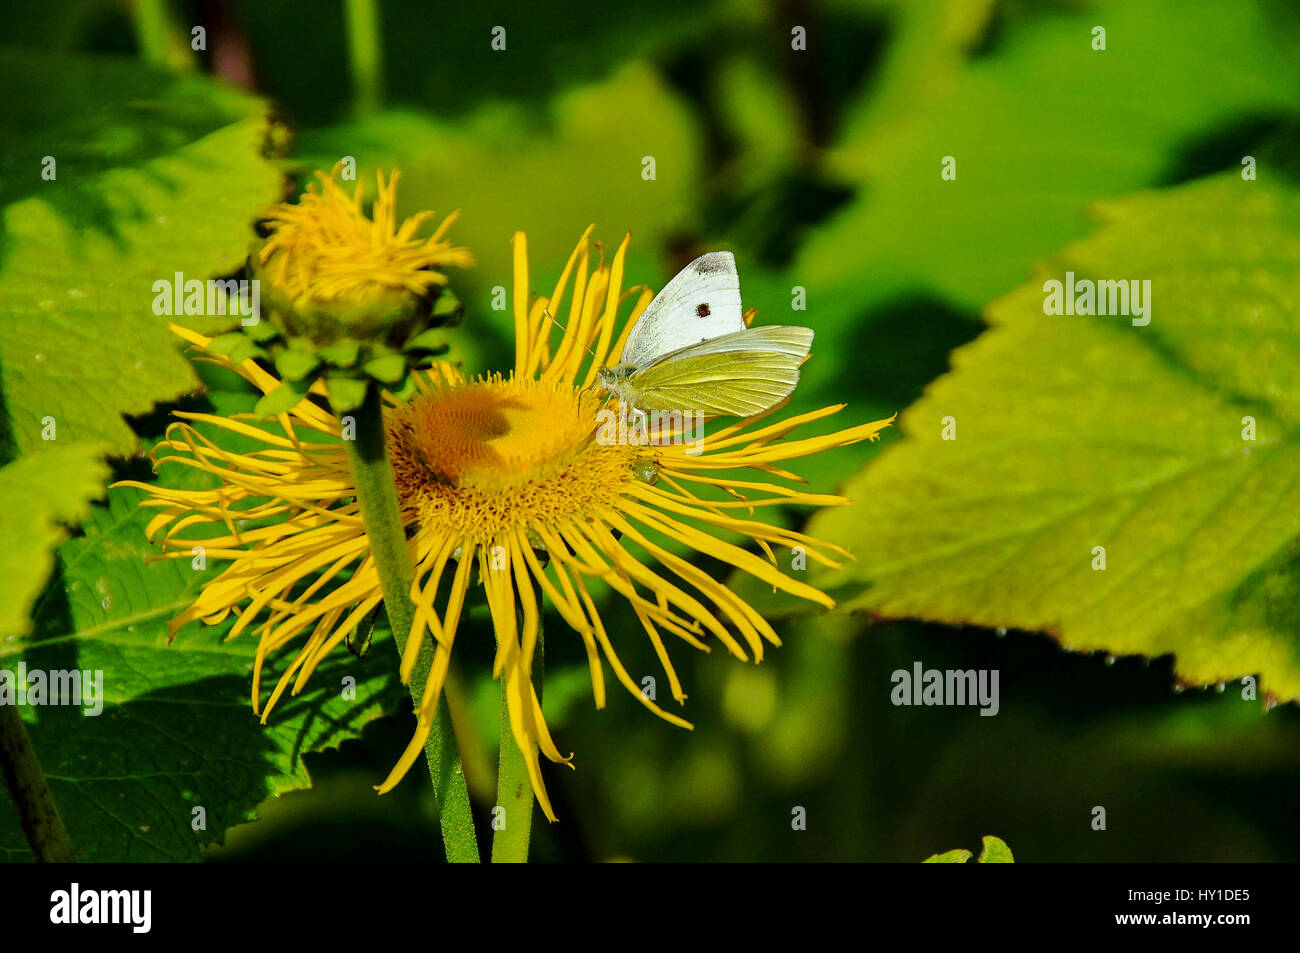 Butterfly on yellow daisy type flower stock photo royalty free butterfly on yellow daisy type flower dhlflorist Images